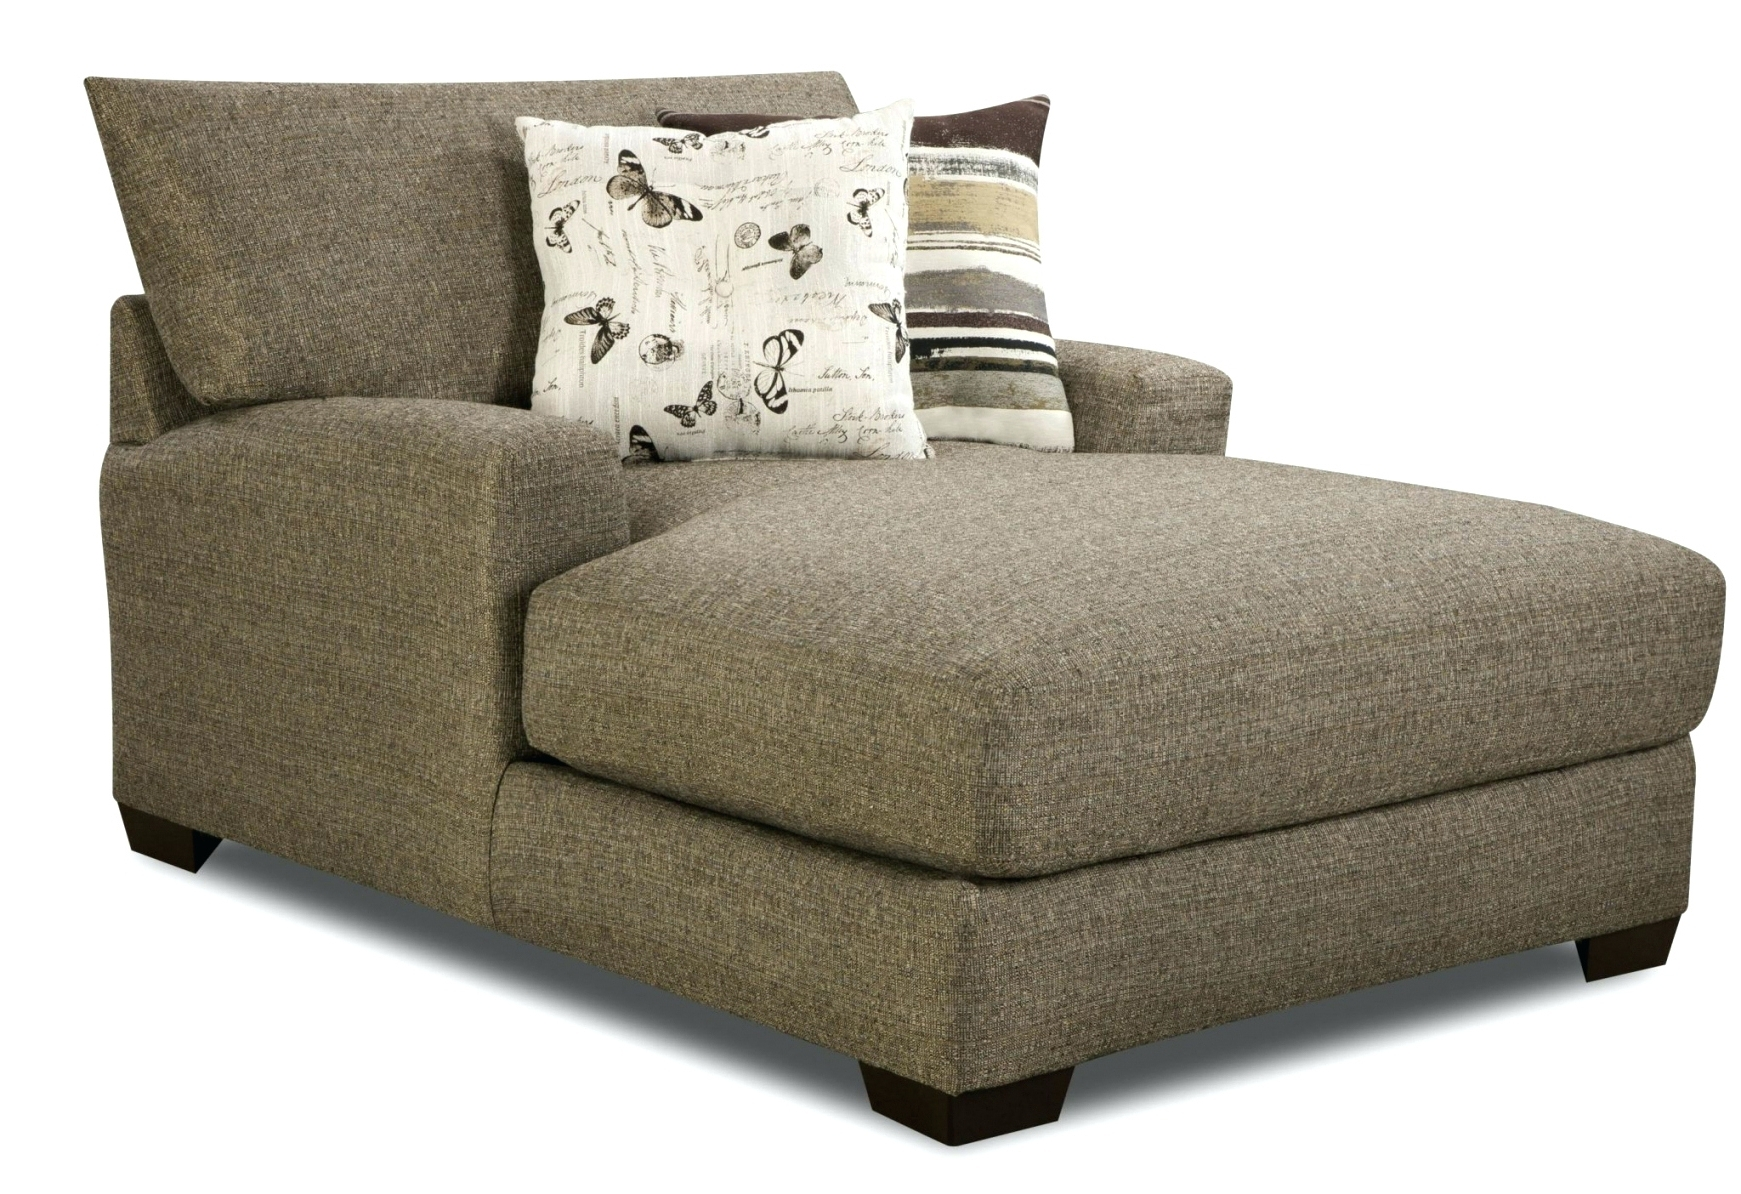 Wide Chaise Lounges With Fashionable Convertible Chair : Lounge Chair Double Wide Chaise Lounge Resin (View 4 of 15)